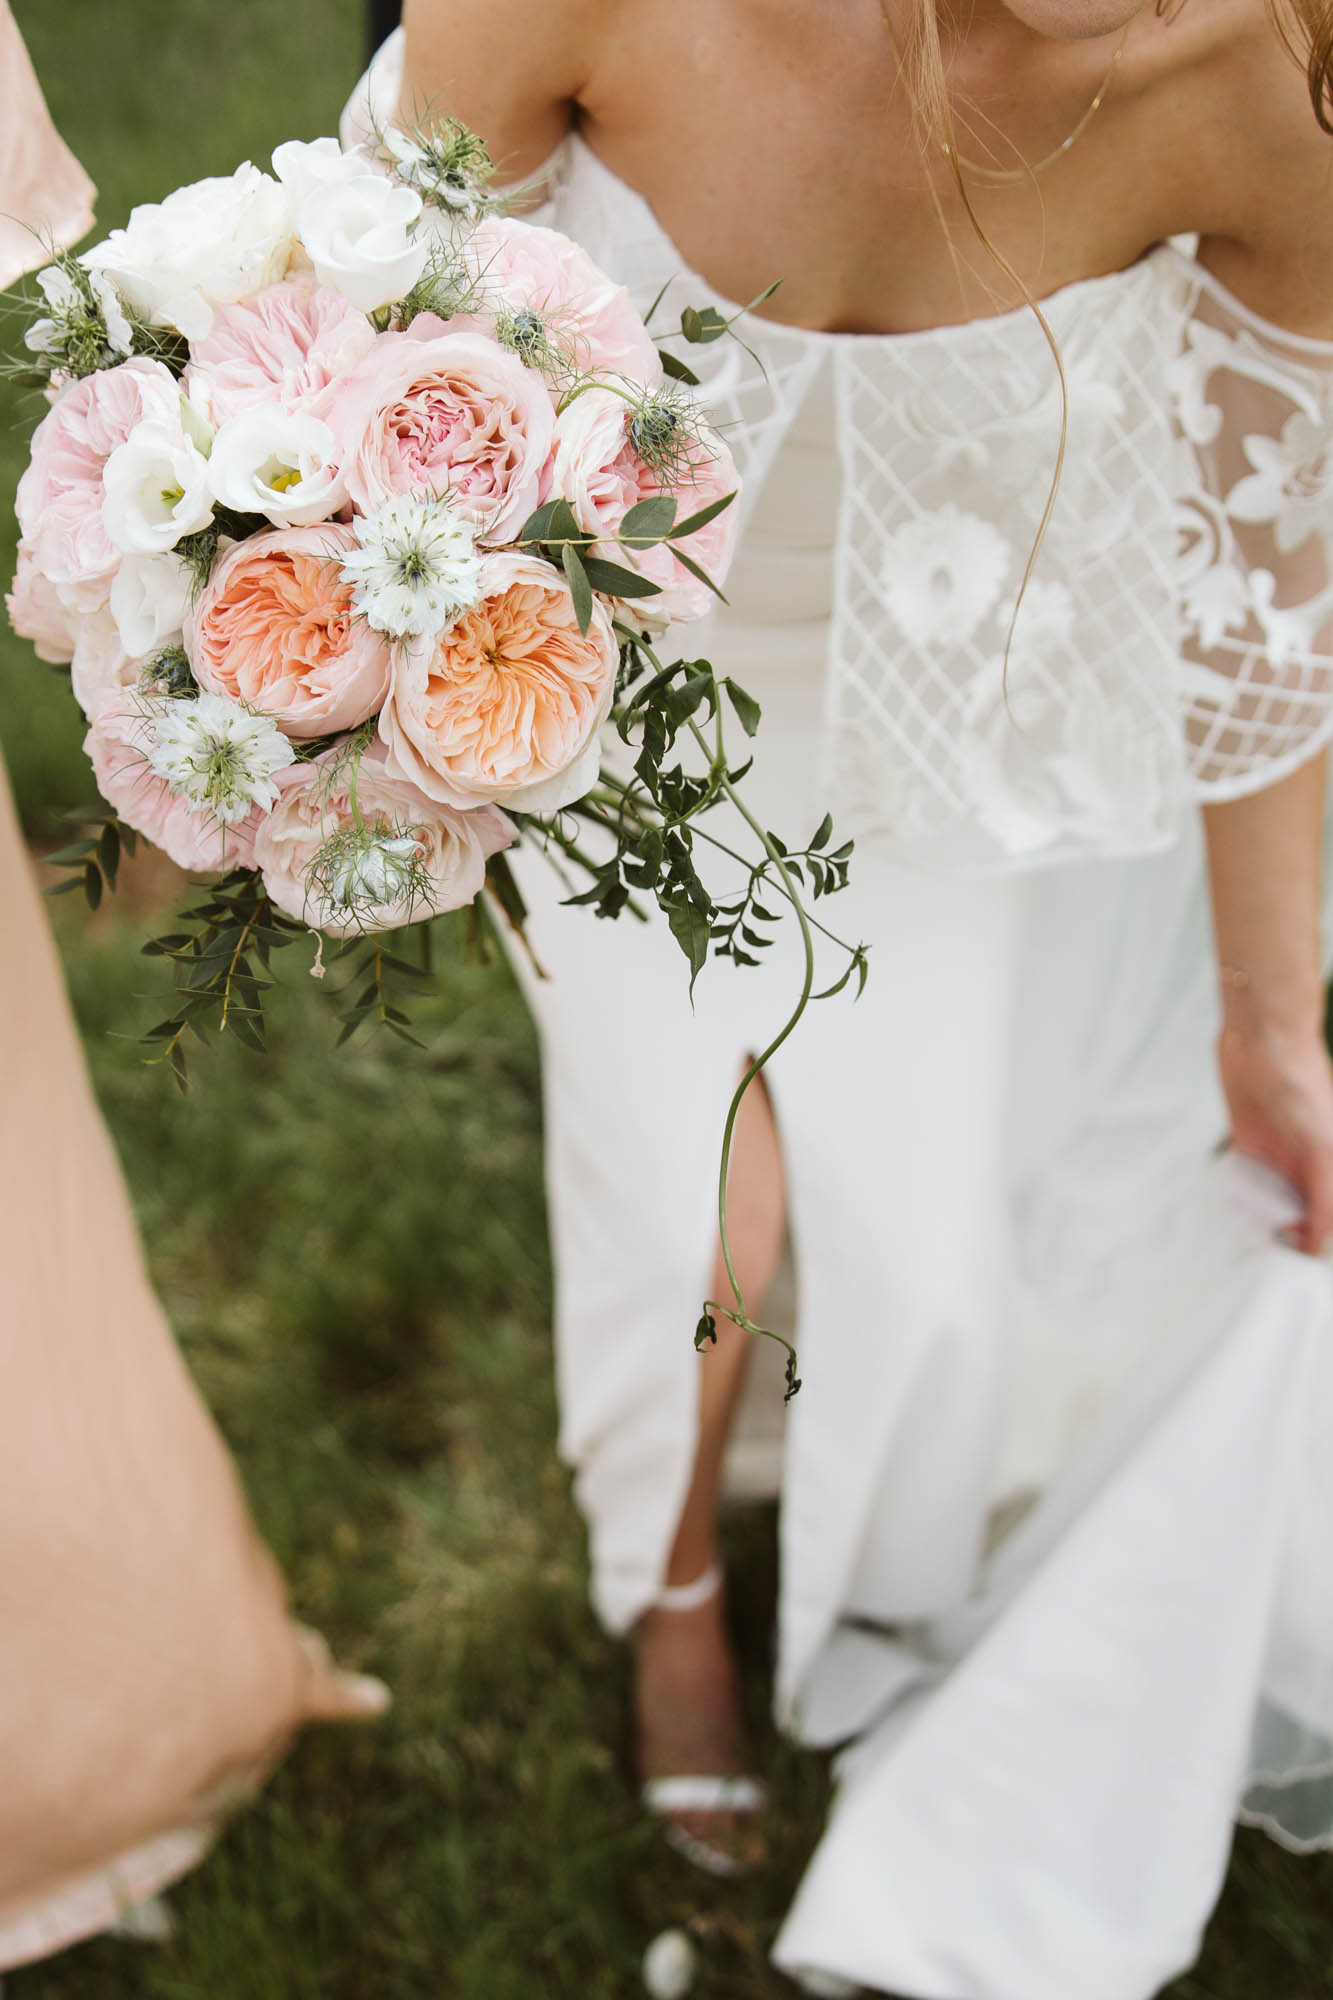 Bride with lace dress and peach bouquet